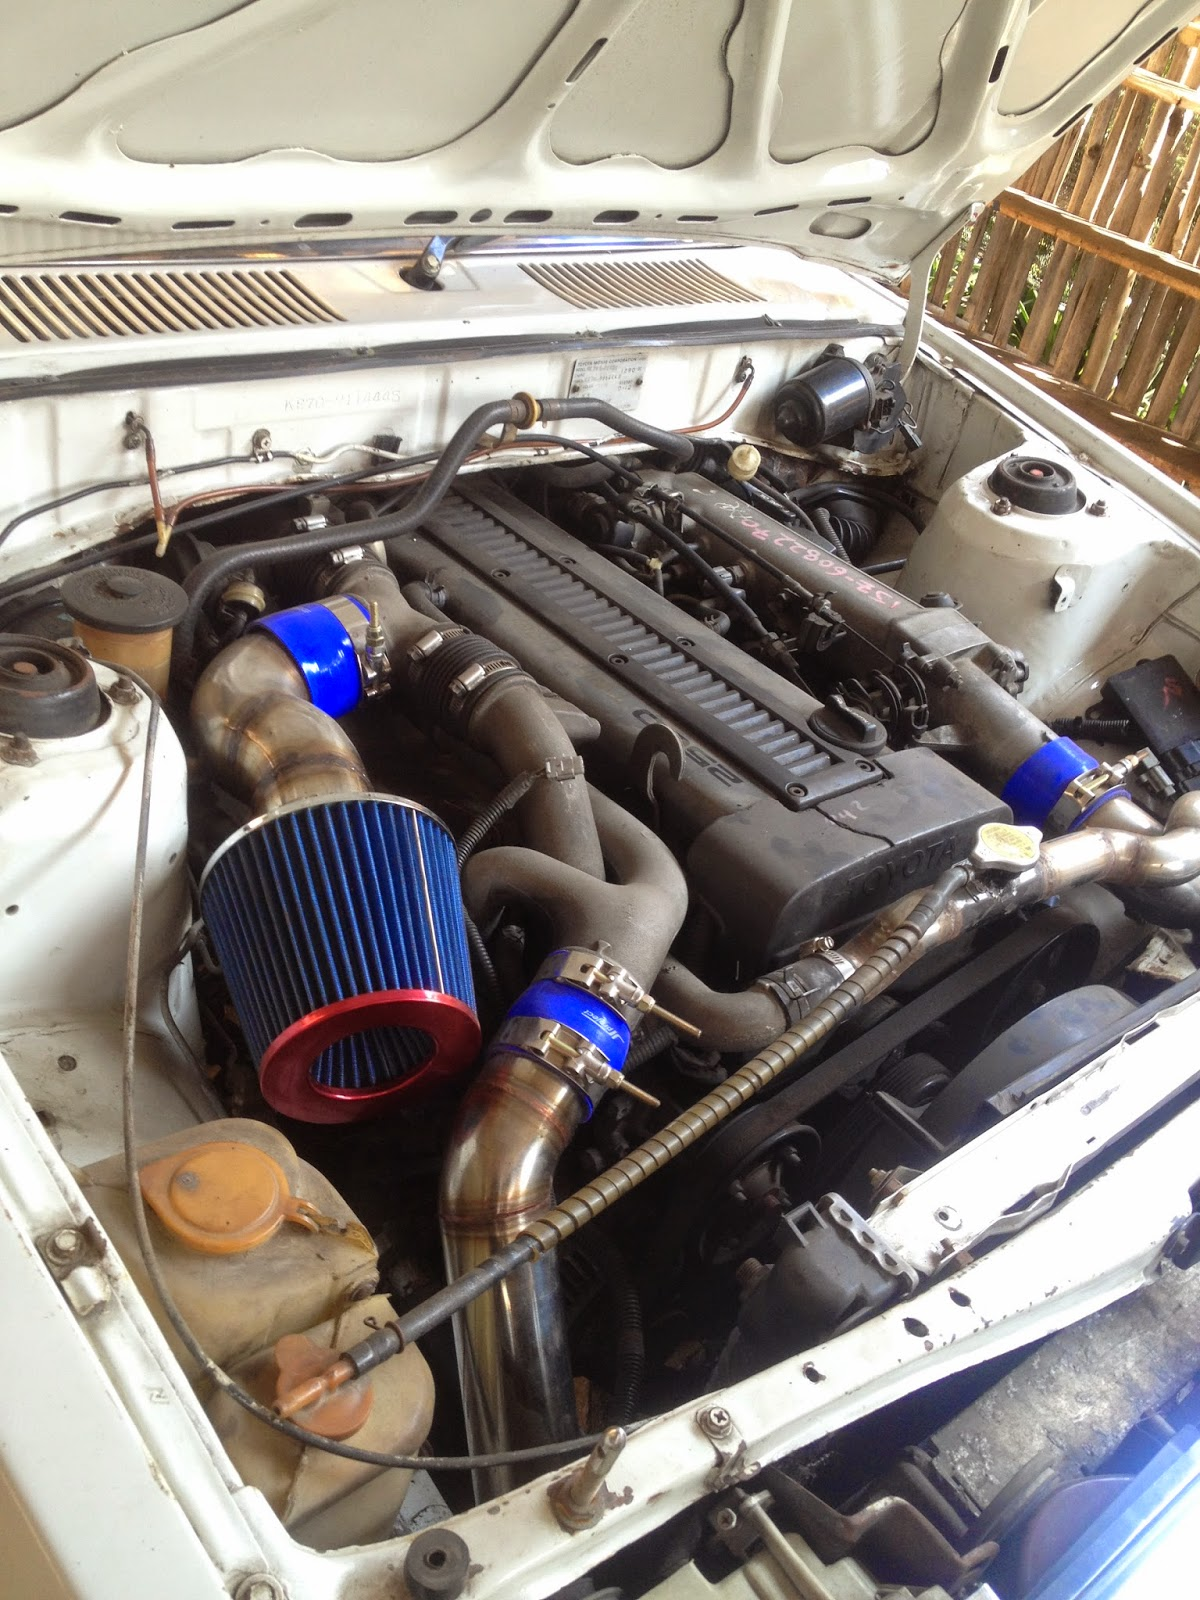 hope my page usefull: my corolla dx engine swap 1jz-gte twin turbo